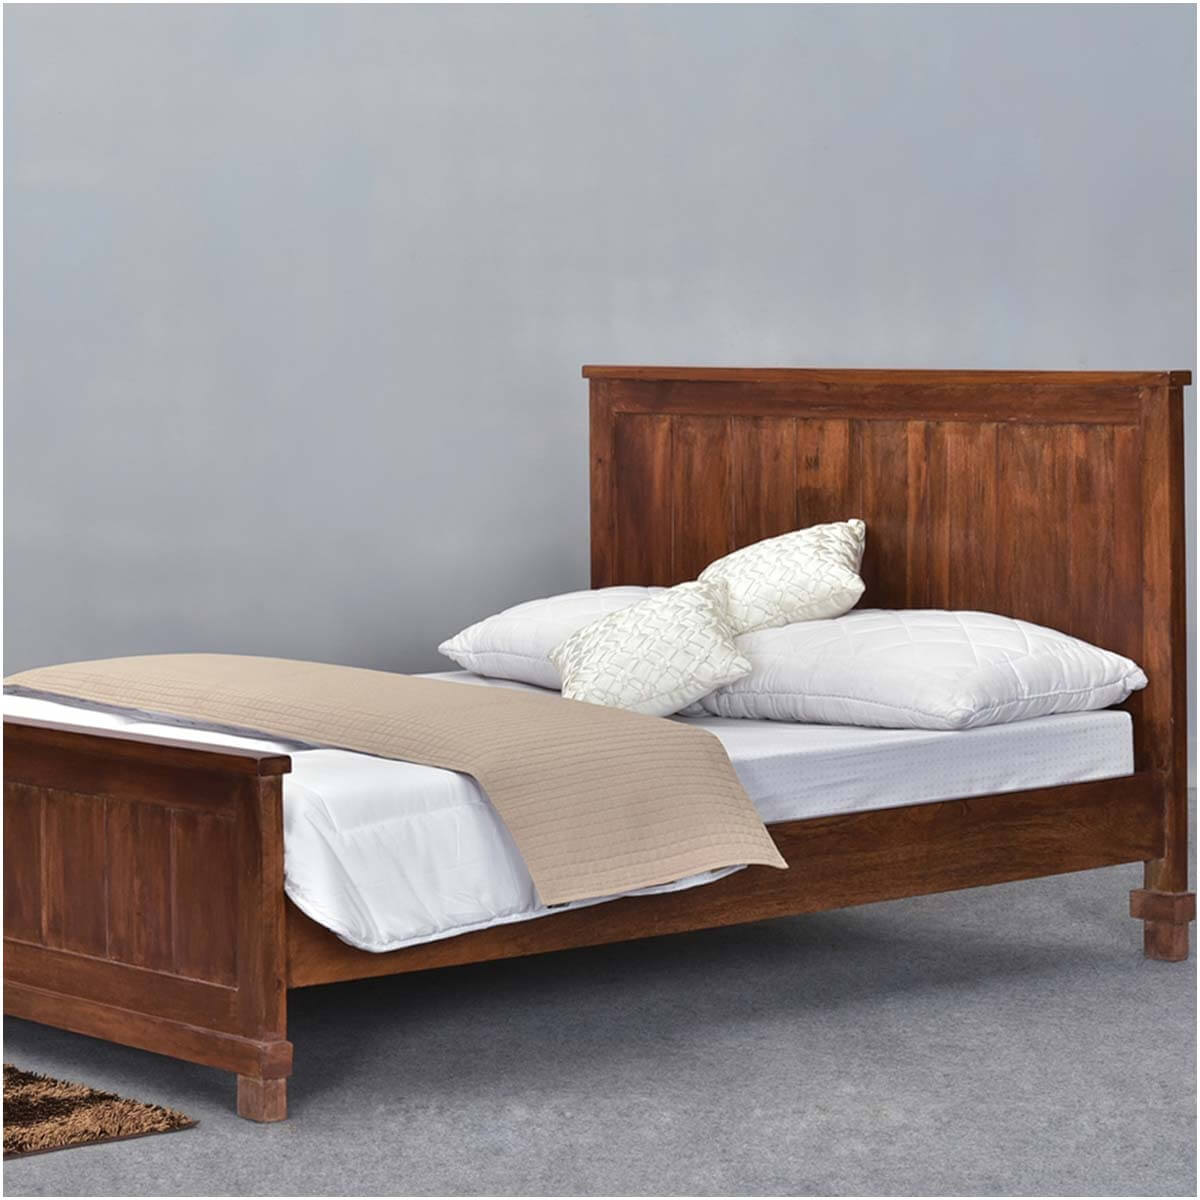 Santa fe mission solid wood rustic full size platform bed Wood platform bed